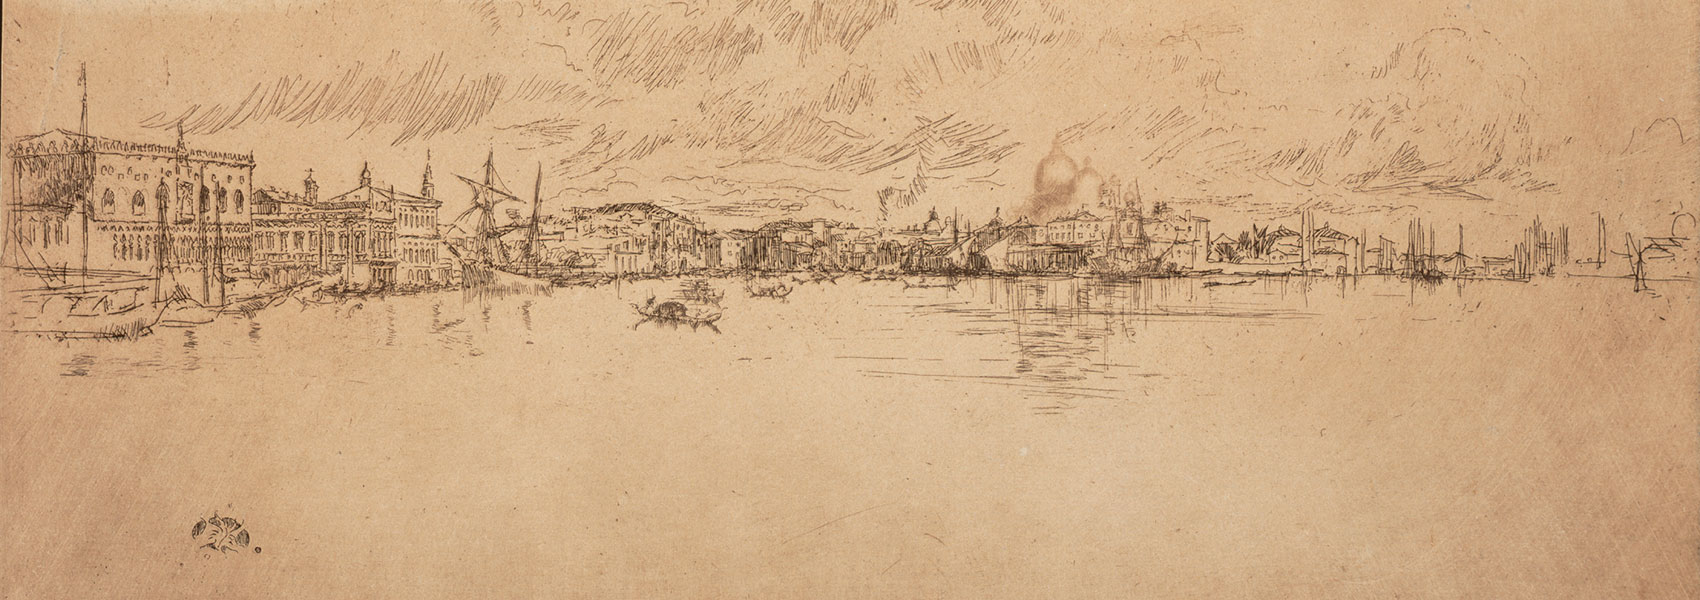 James Abbott McNeill Whistler, Long Venice, 1879-1880